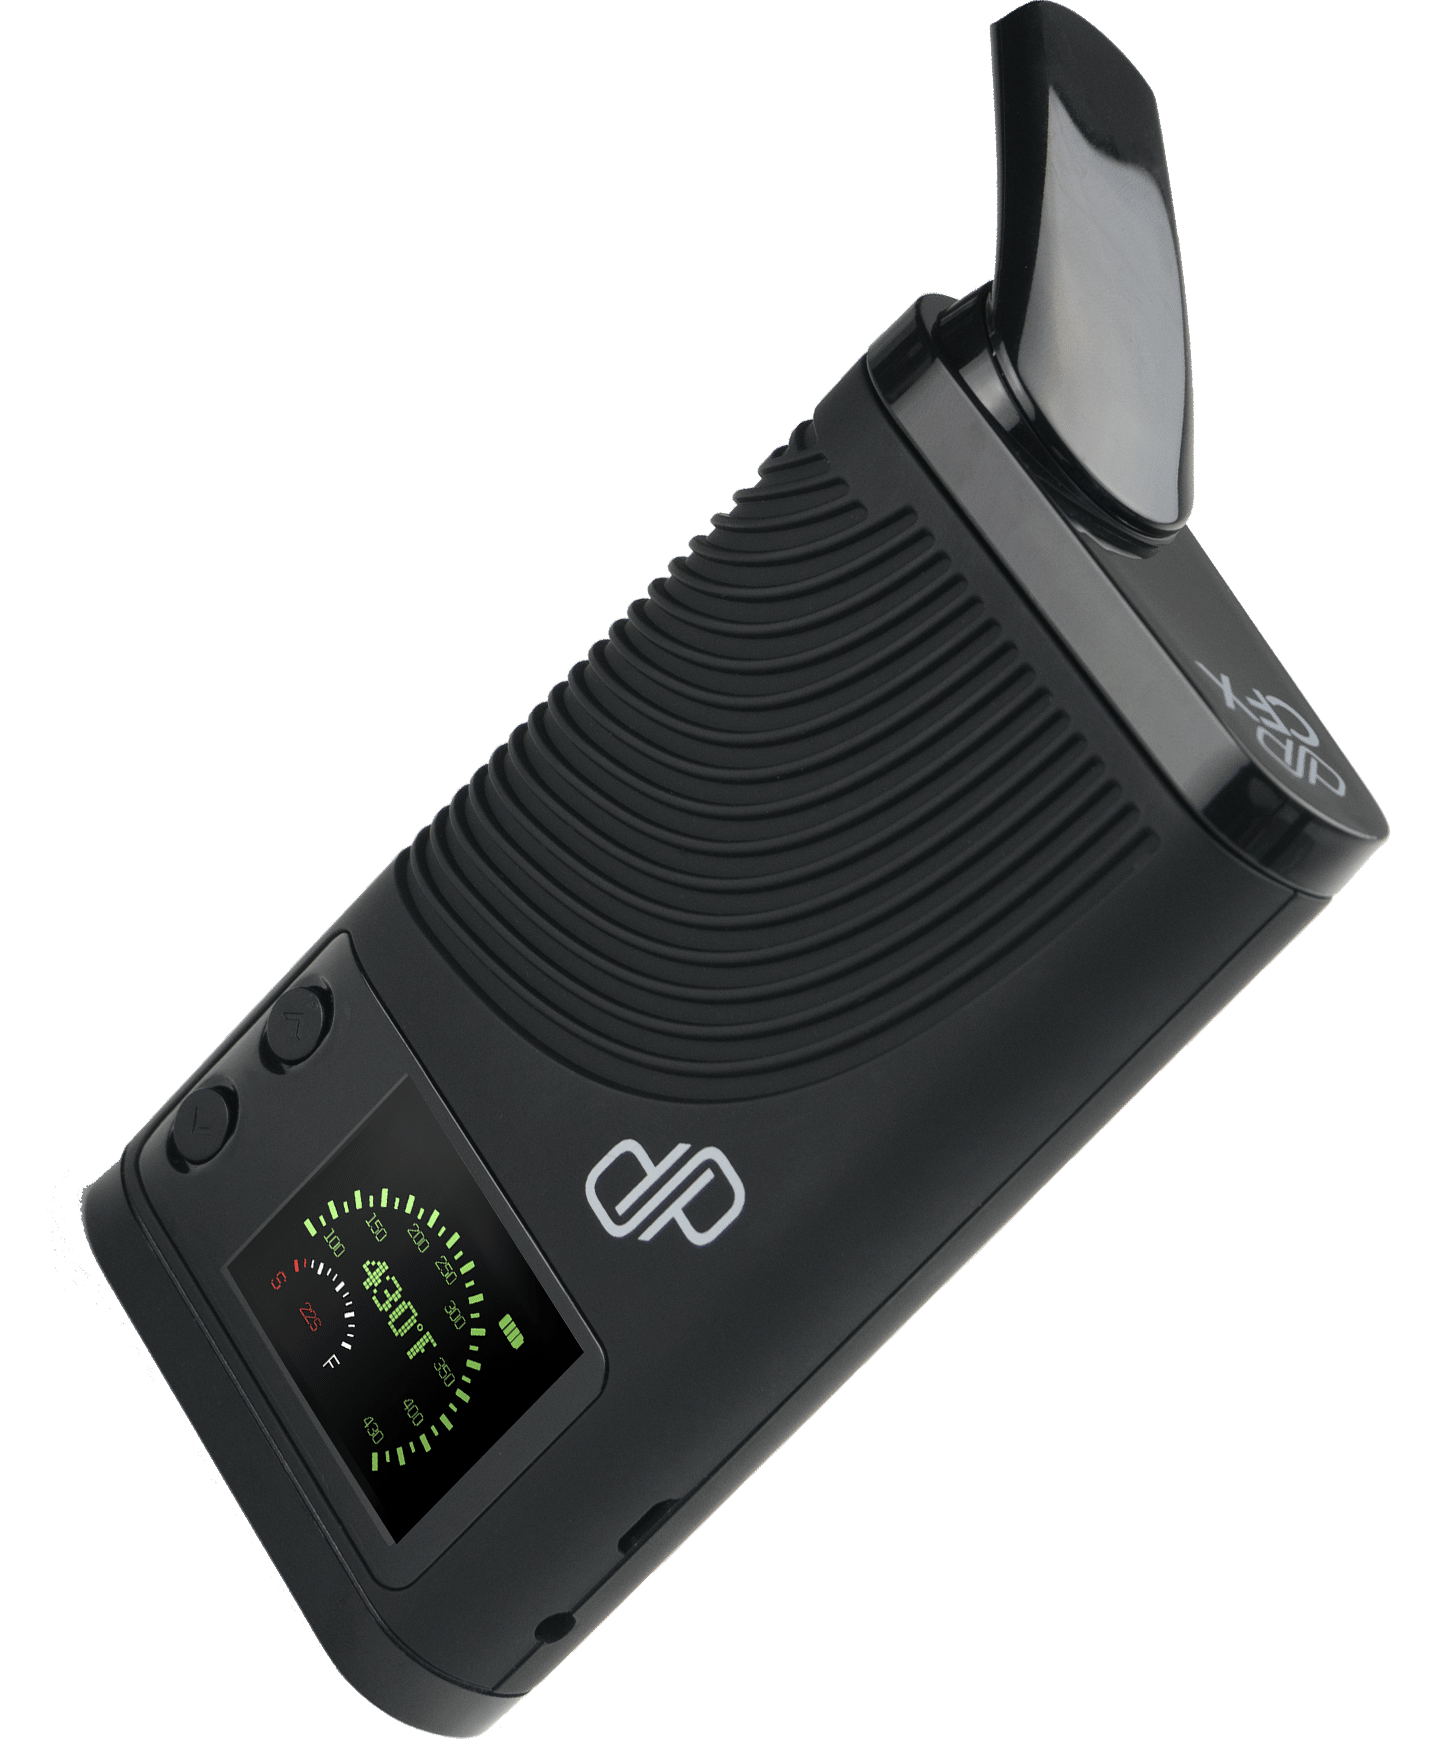 CFX Vaporizer Angled to the Right without a Background